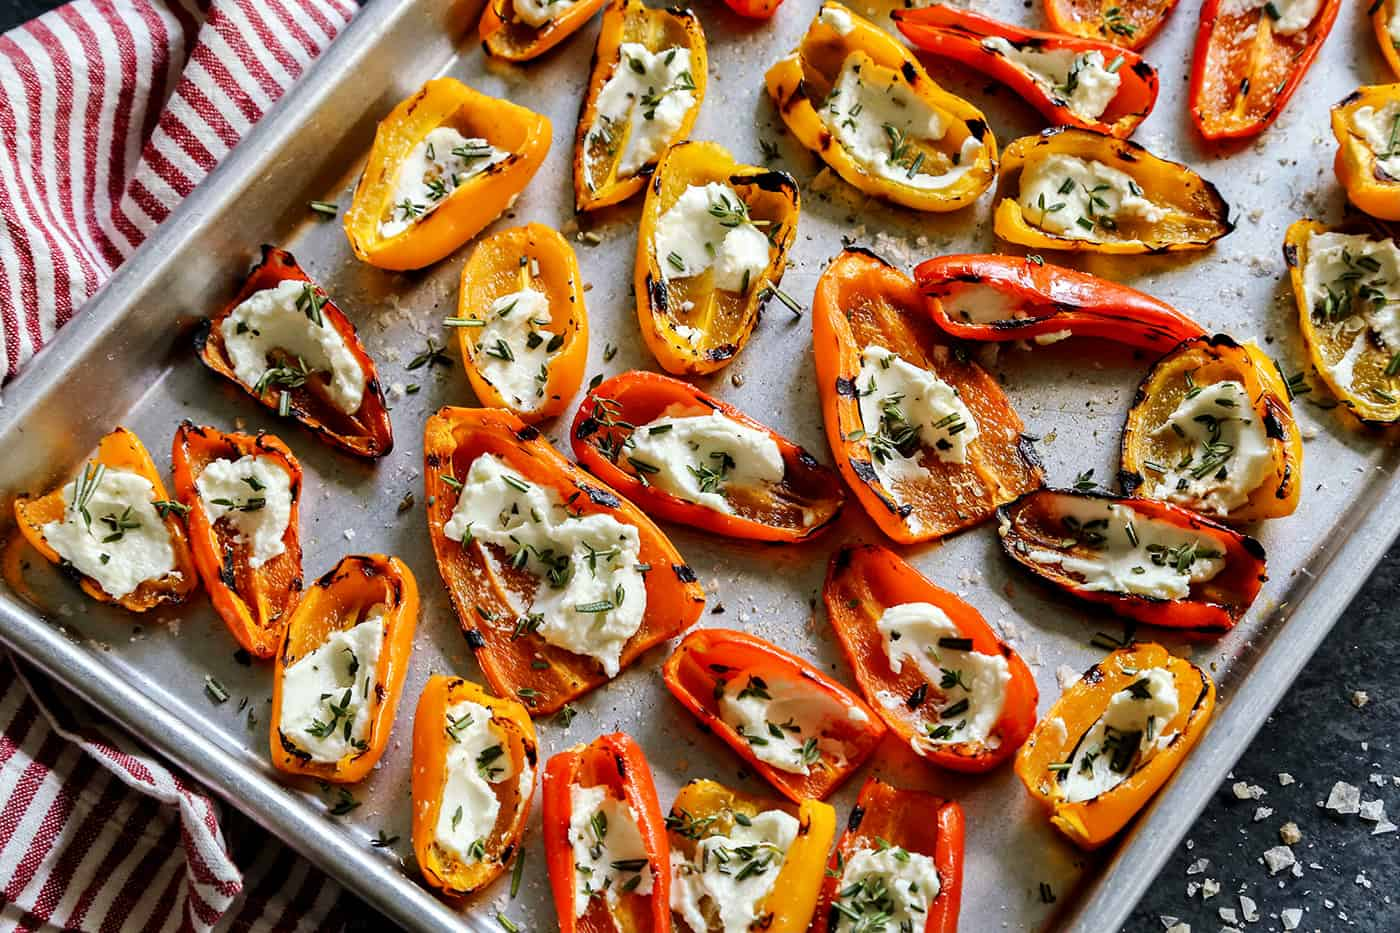 Overhead view of Grilled Mini Sweet Peppers filled with Goat Cheese on a sheet pan